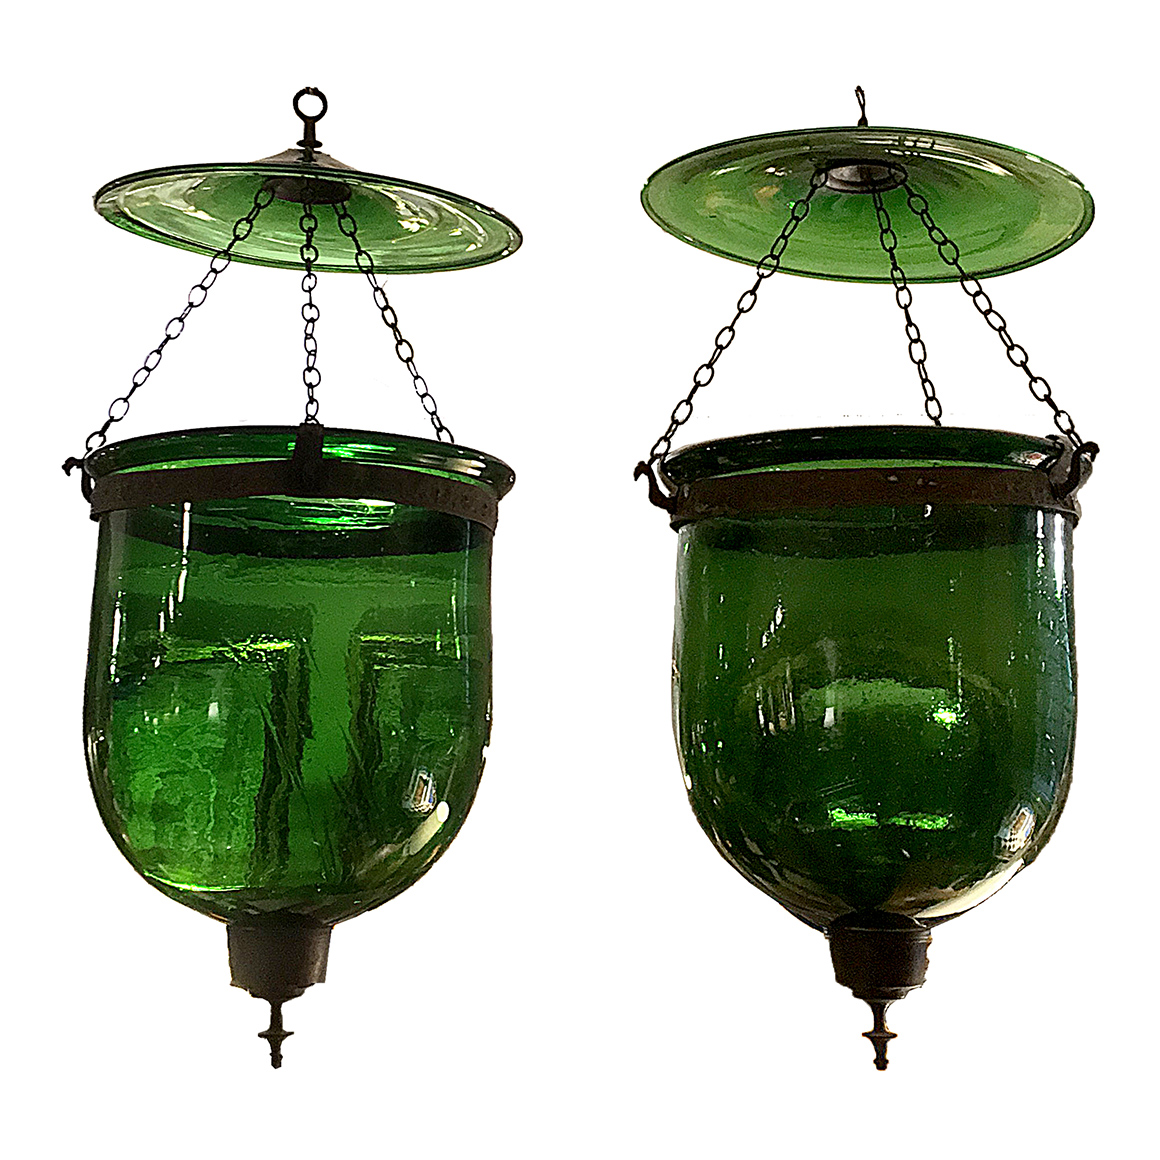 3154 Pair Of 19th Century Anglo Indian Hand Blown Green Glass Hanging Bell Jar Lanterns O Sullivan Antiques Nyc